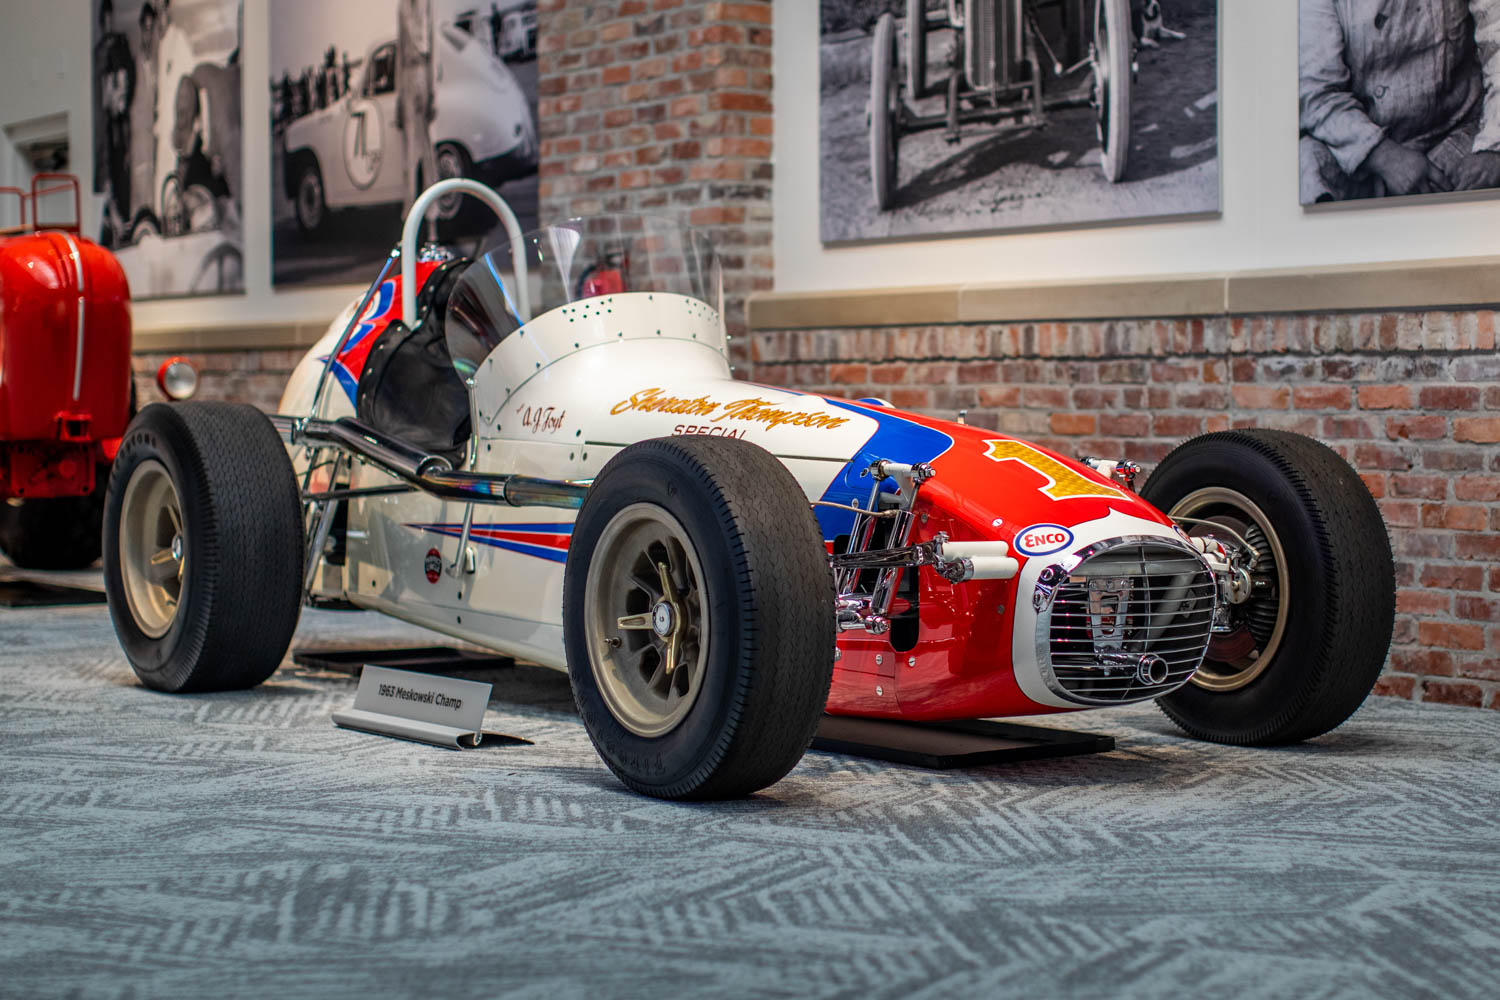 The 1963 Meskowski Champ driven by A.J. Foyt is part of the Brumos Collection's extensive catalog of circle-track racers.